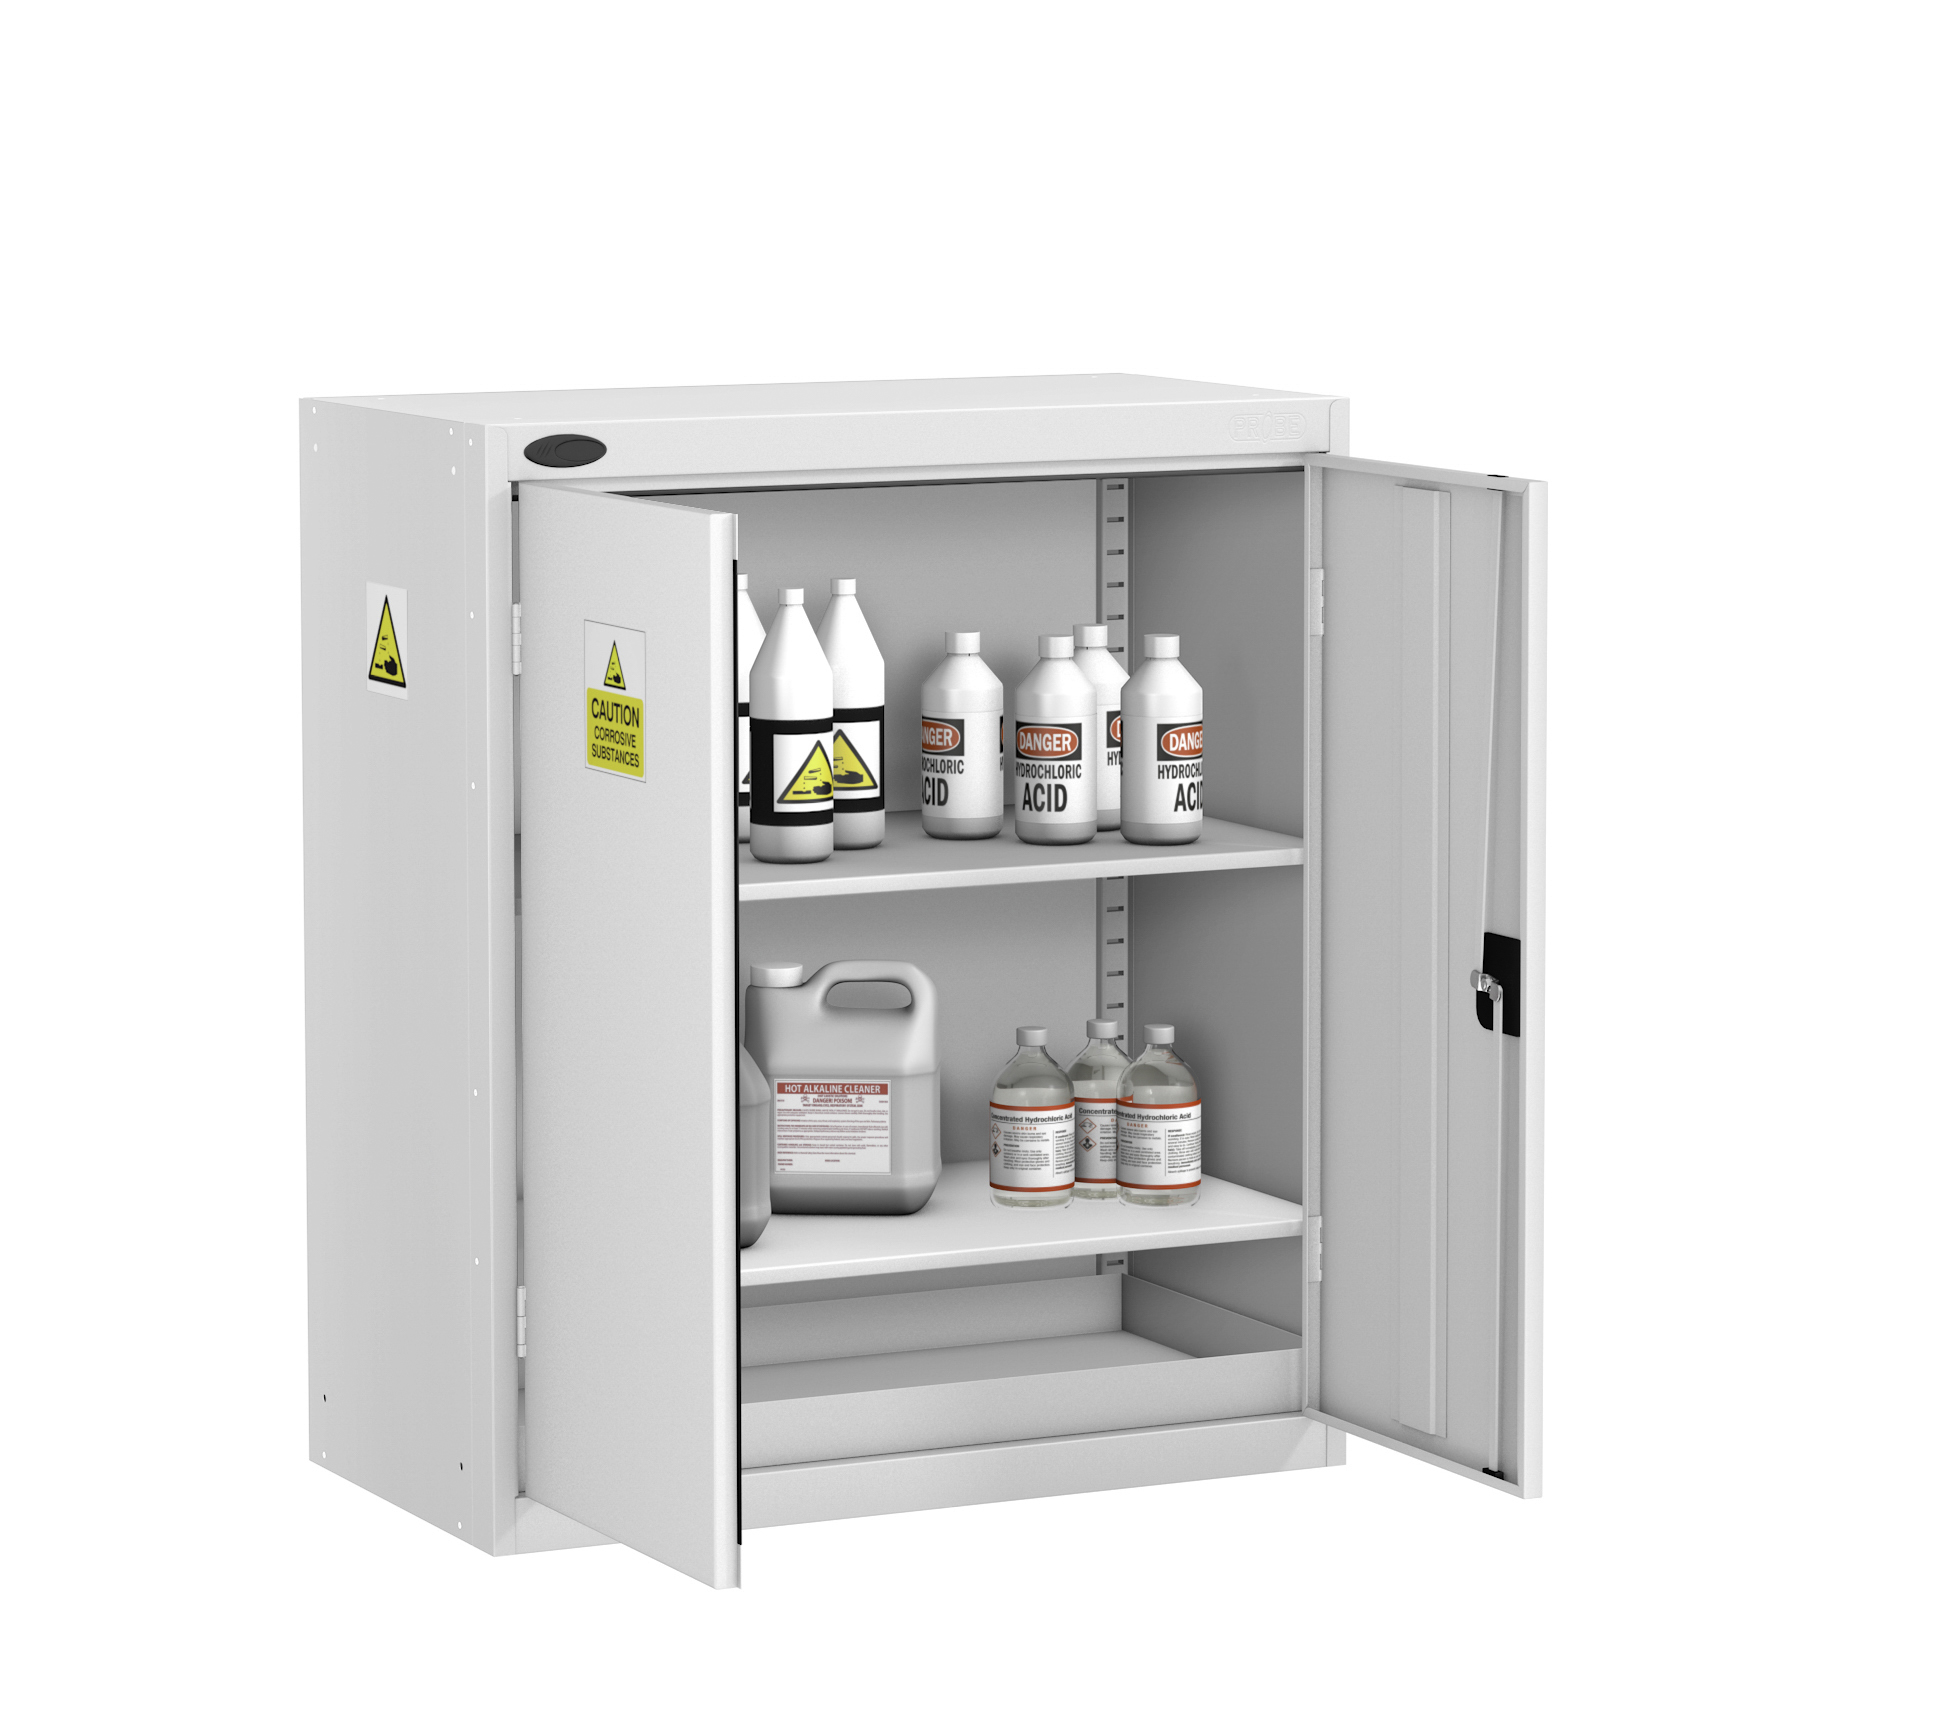 Low Acid/Alkaline Cabinets